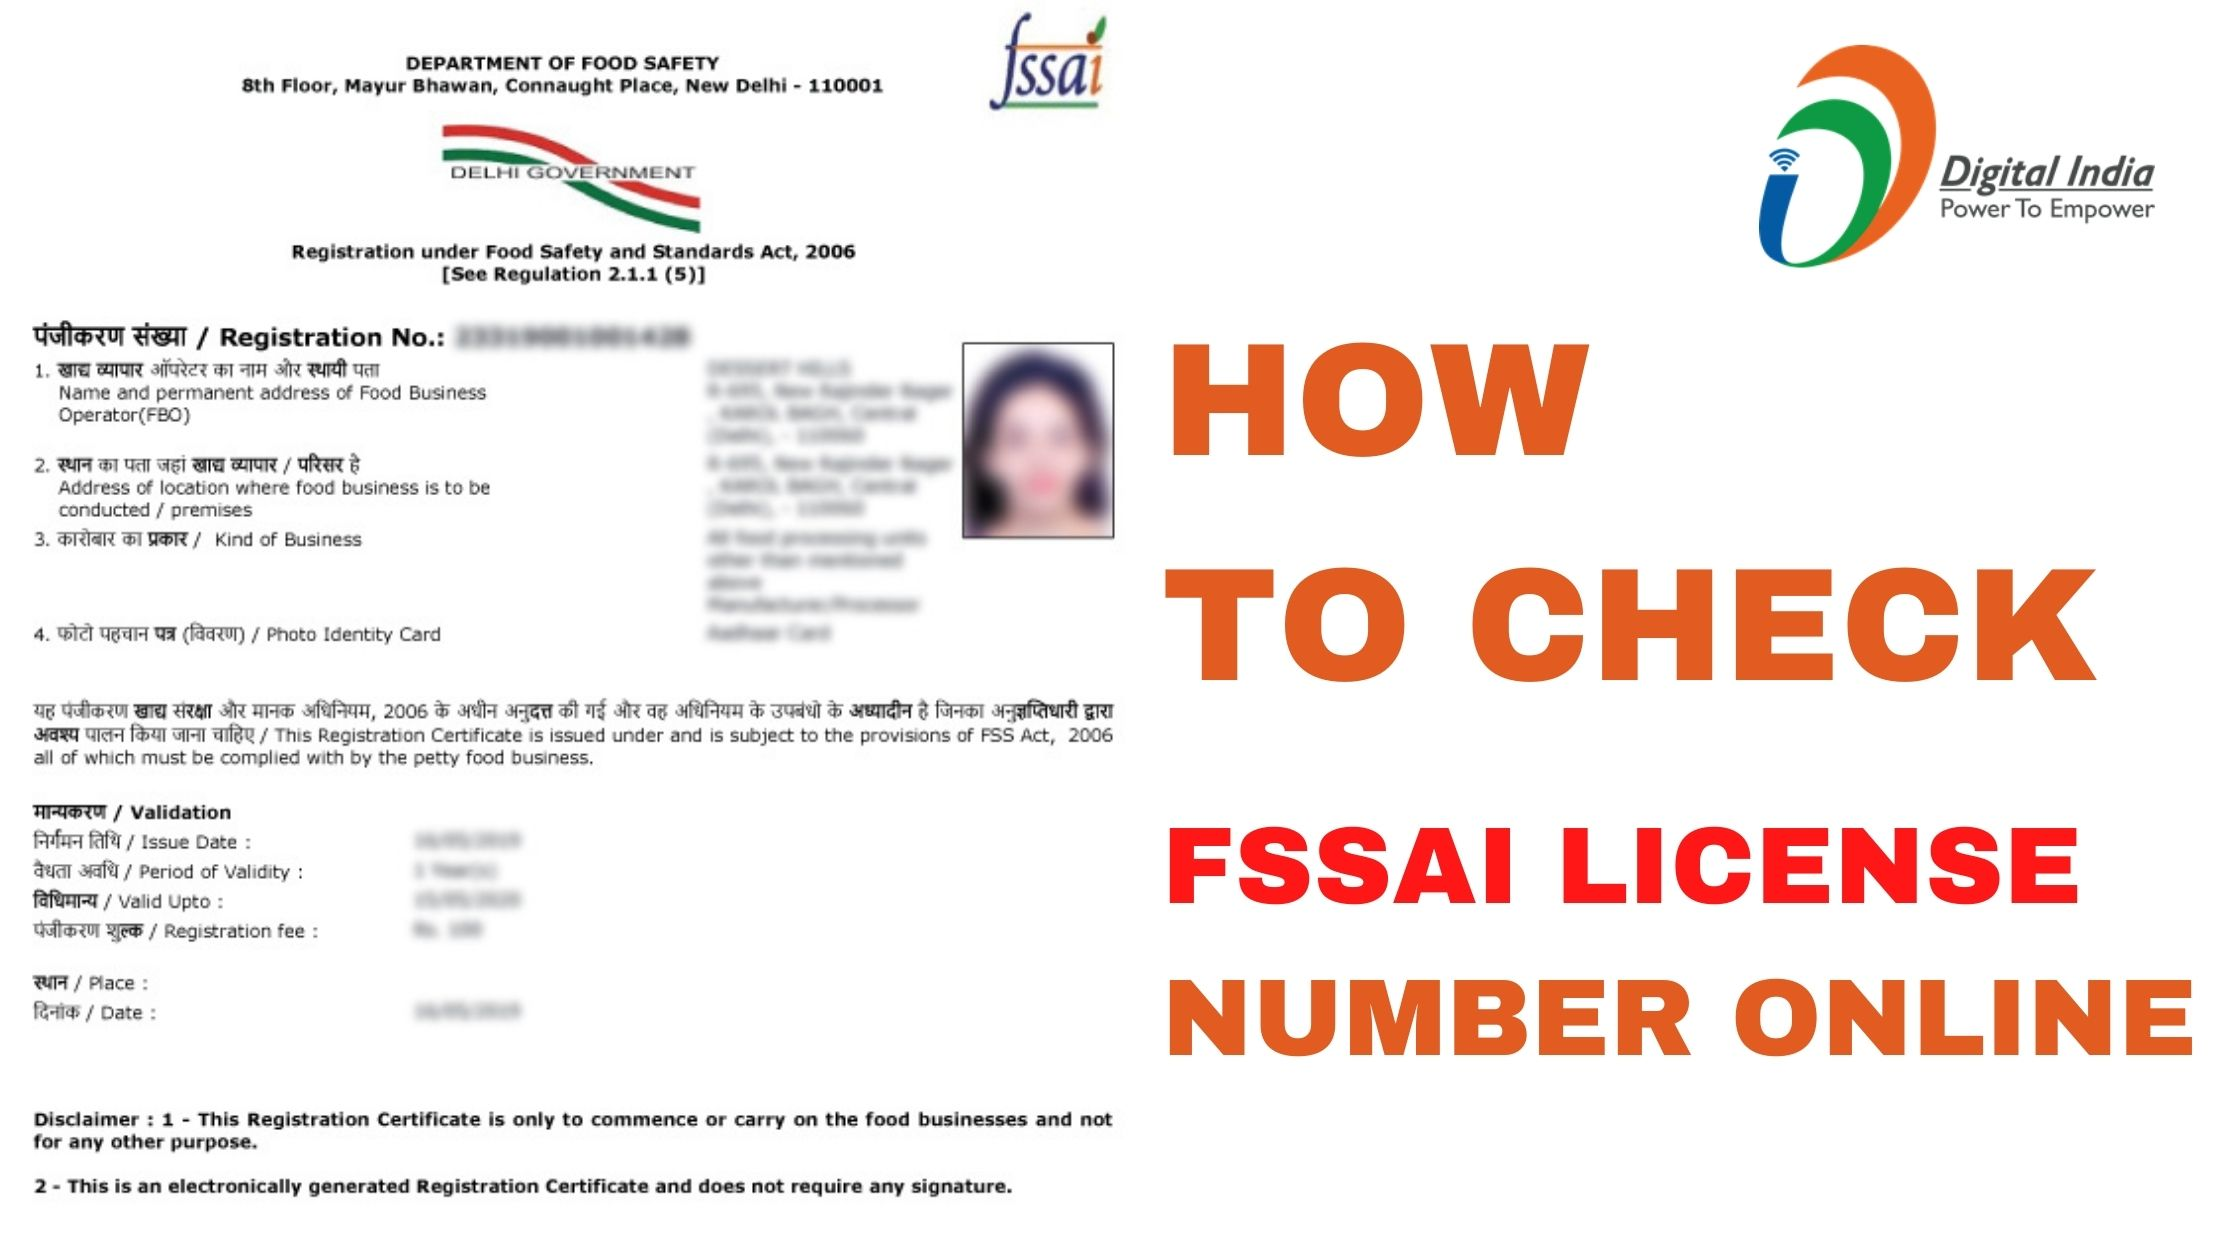 How to Check FSSAI License Number Online